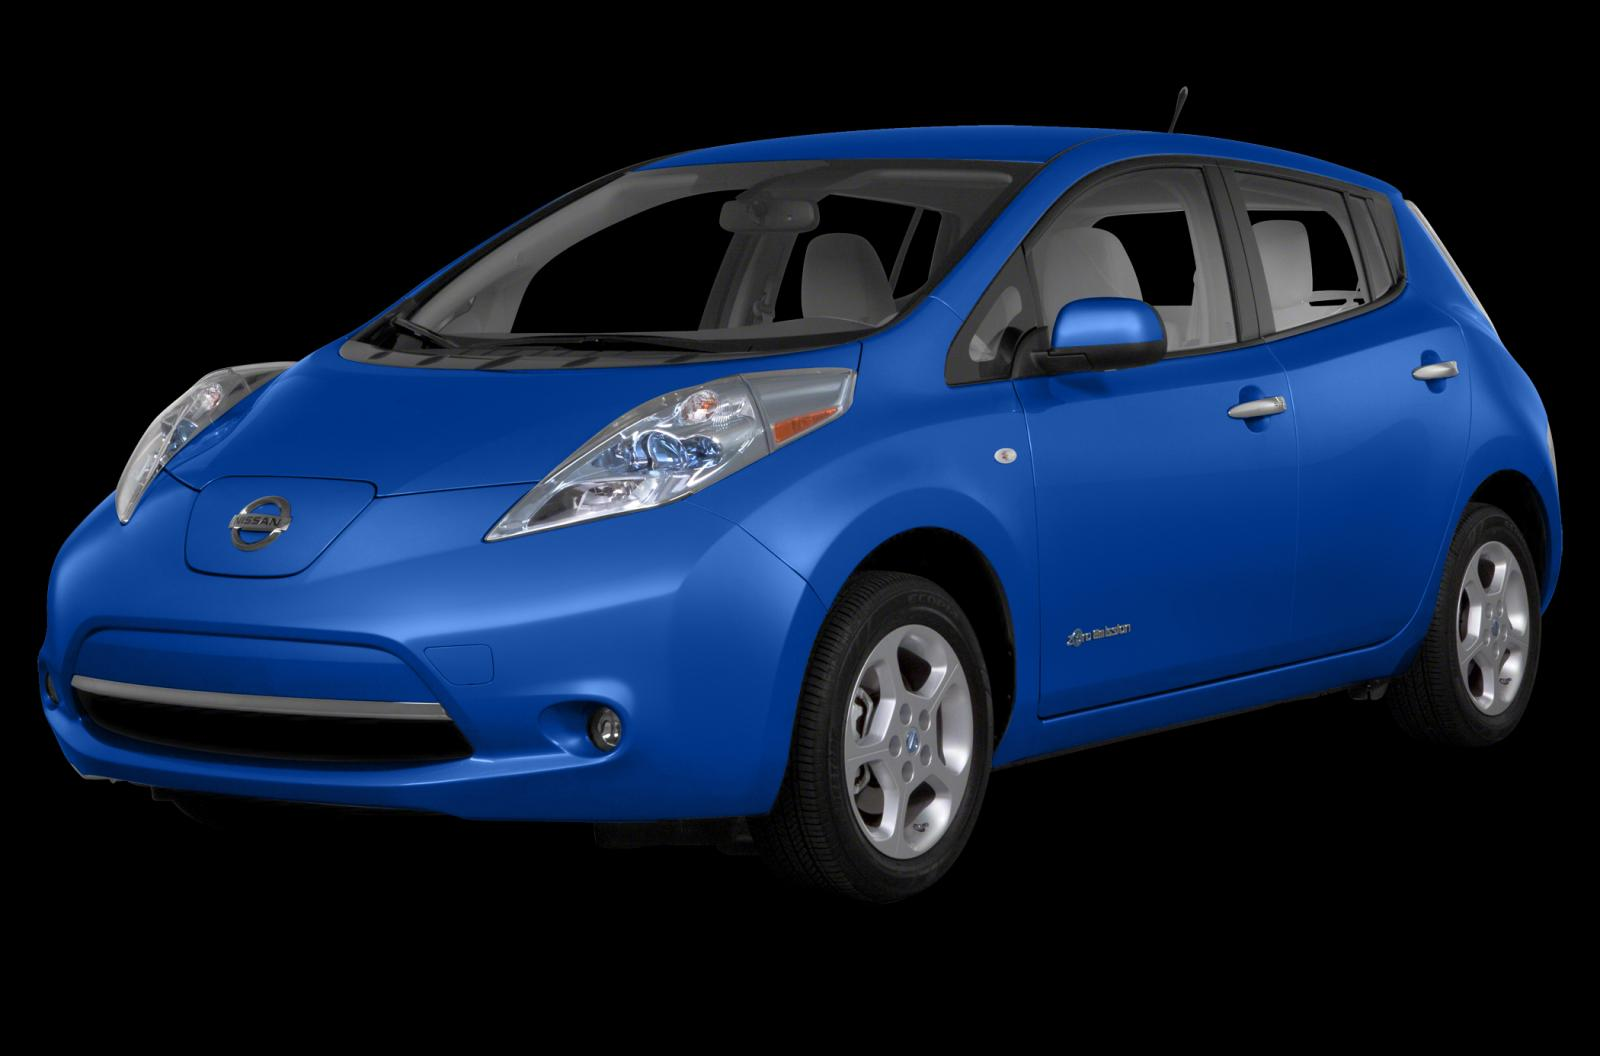 2013 nissan leaf information and photos zombiedrive. Black Bedroom Furniture Sets. Home Design Ideas